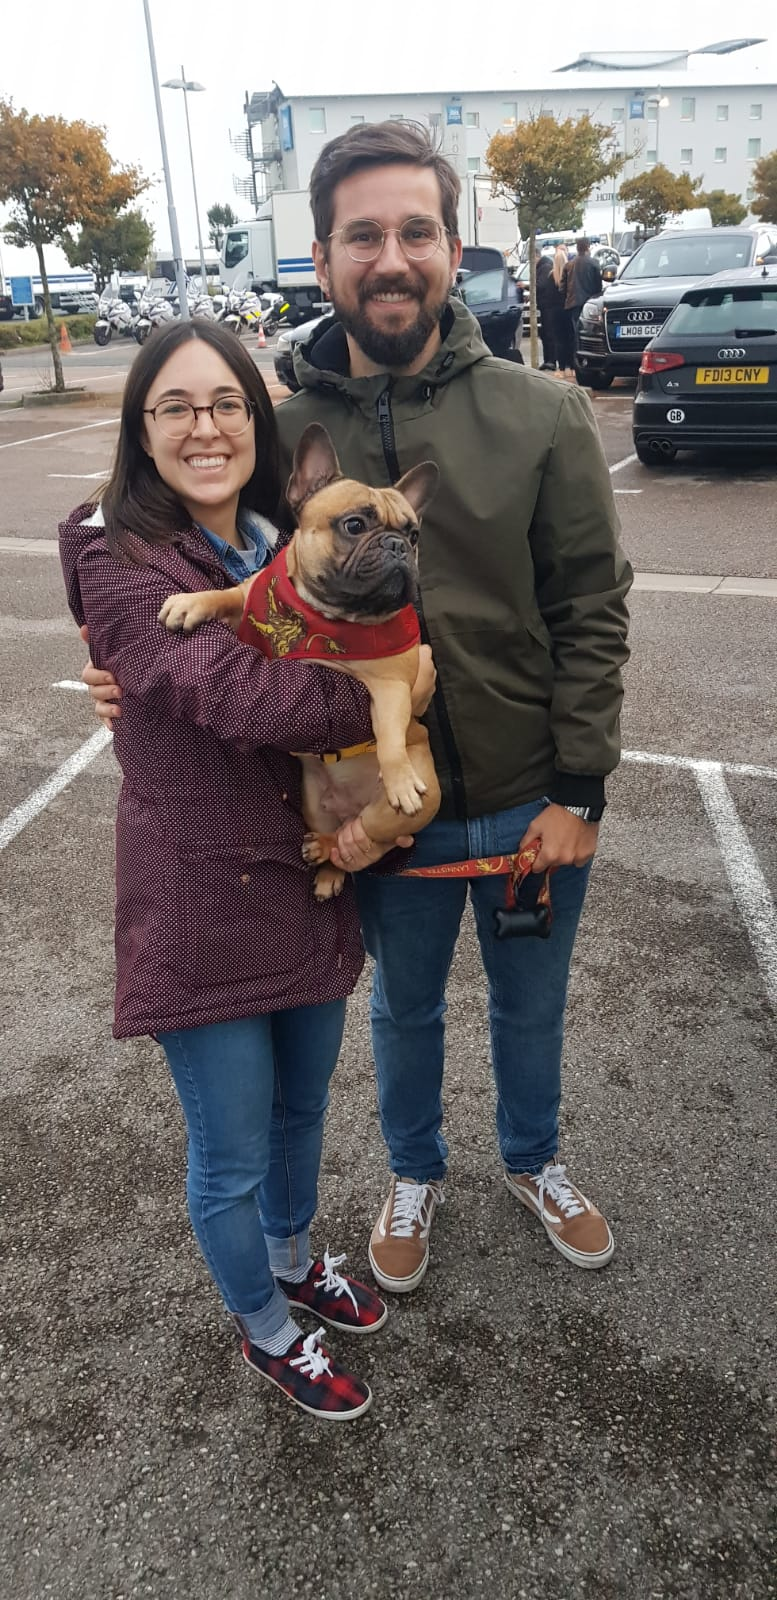 Smiles all round as Yoda and his owners are reunited